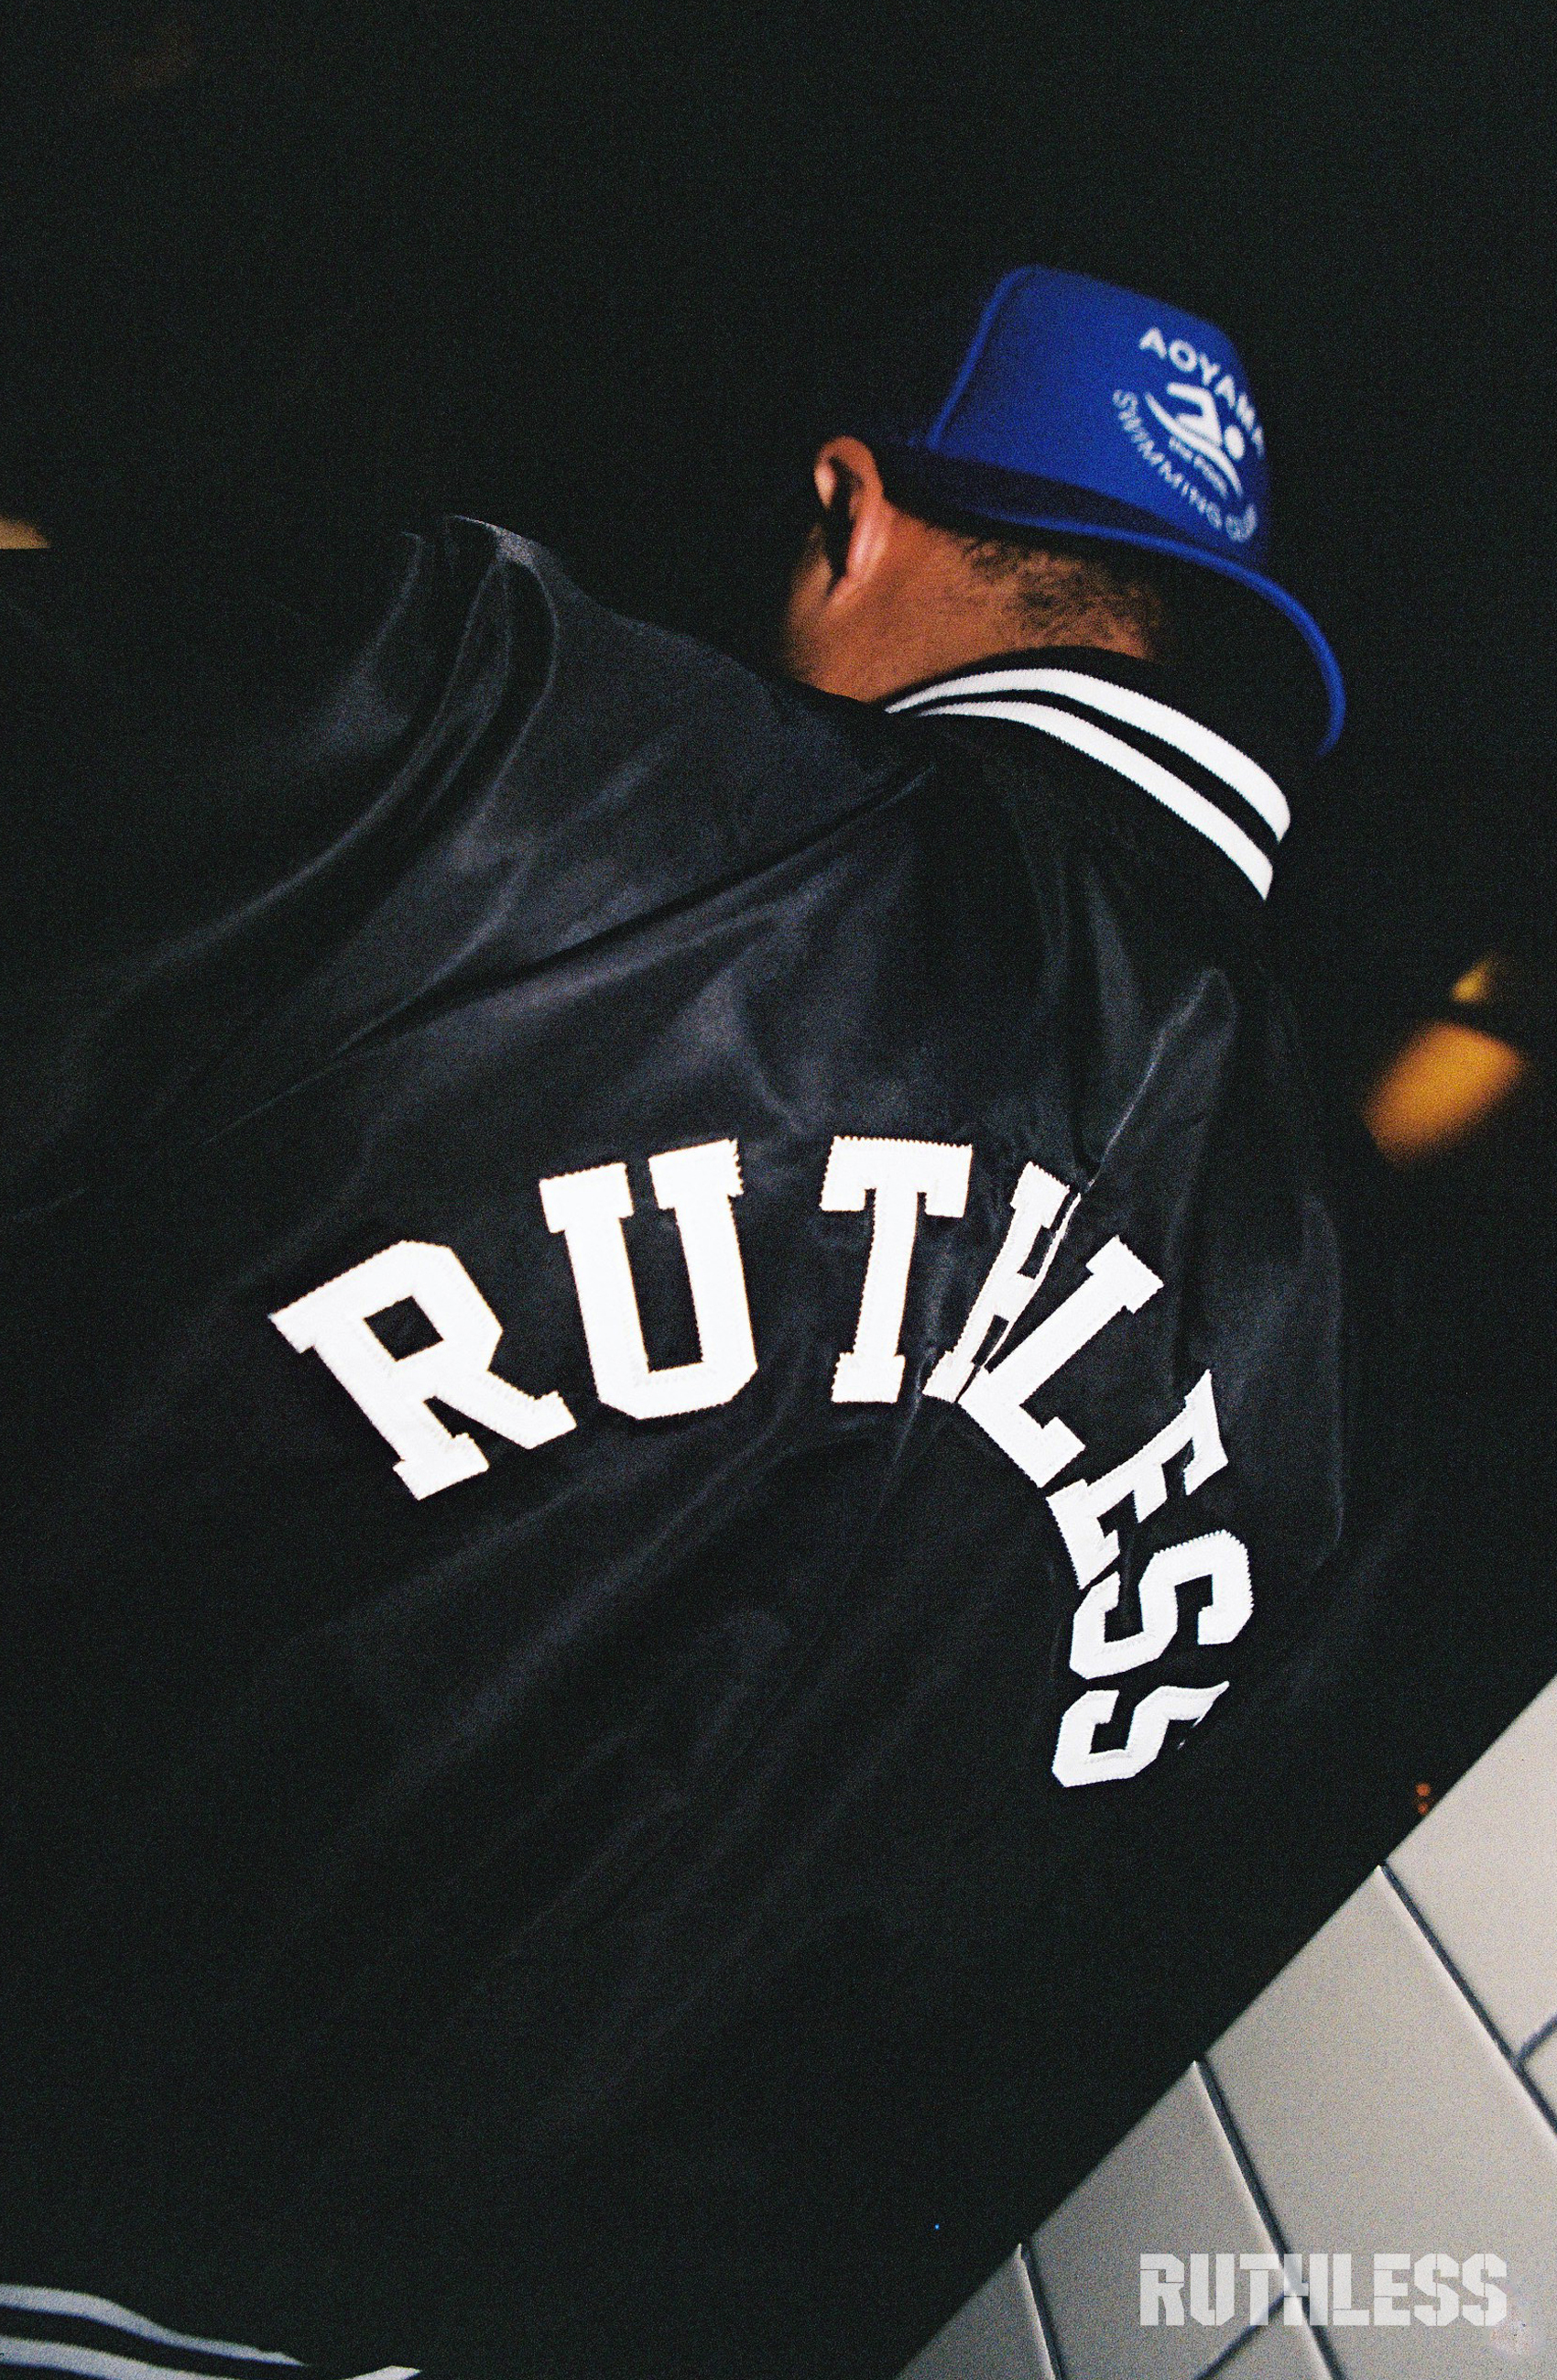 ruthless_party_031.jpg